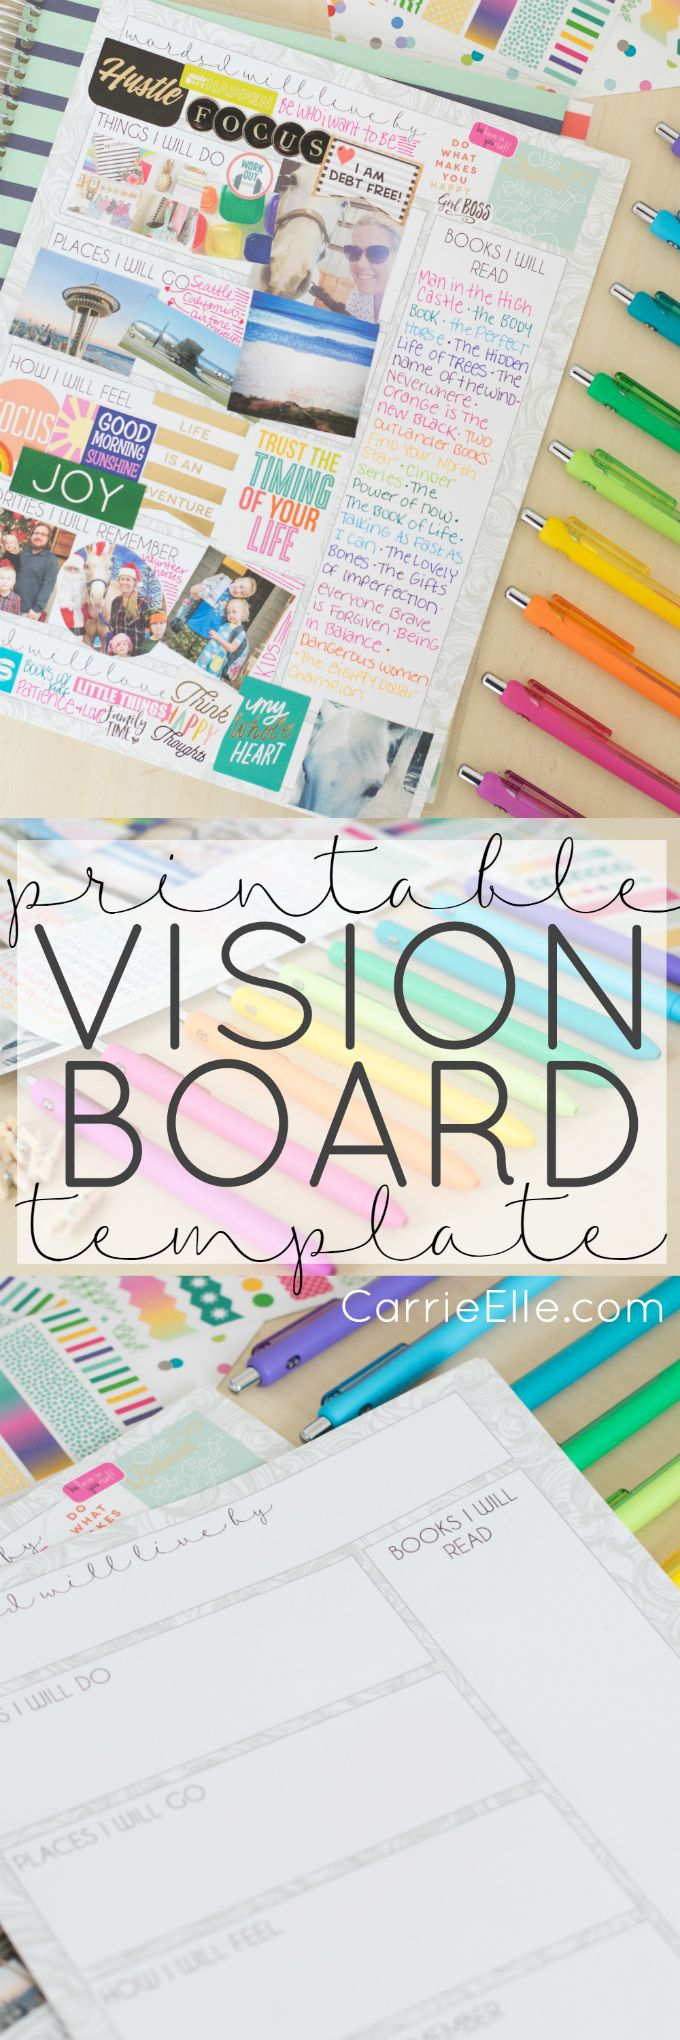 The dress journal of vision - Printable Vision Board Template